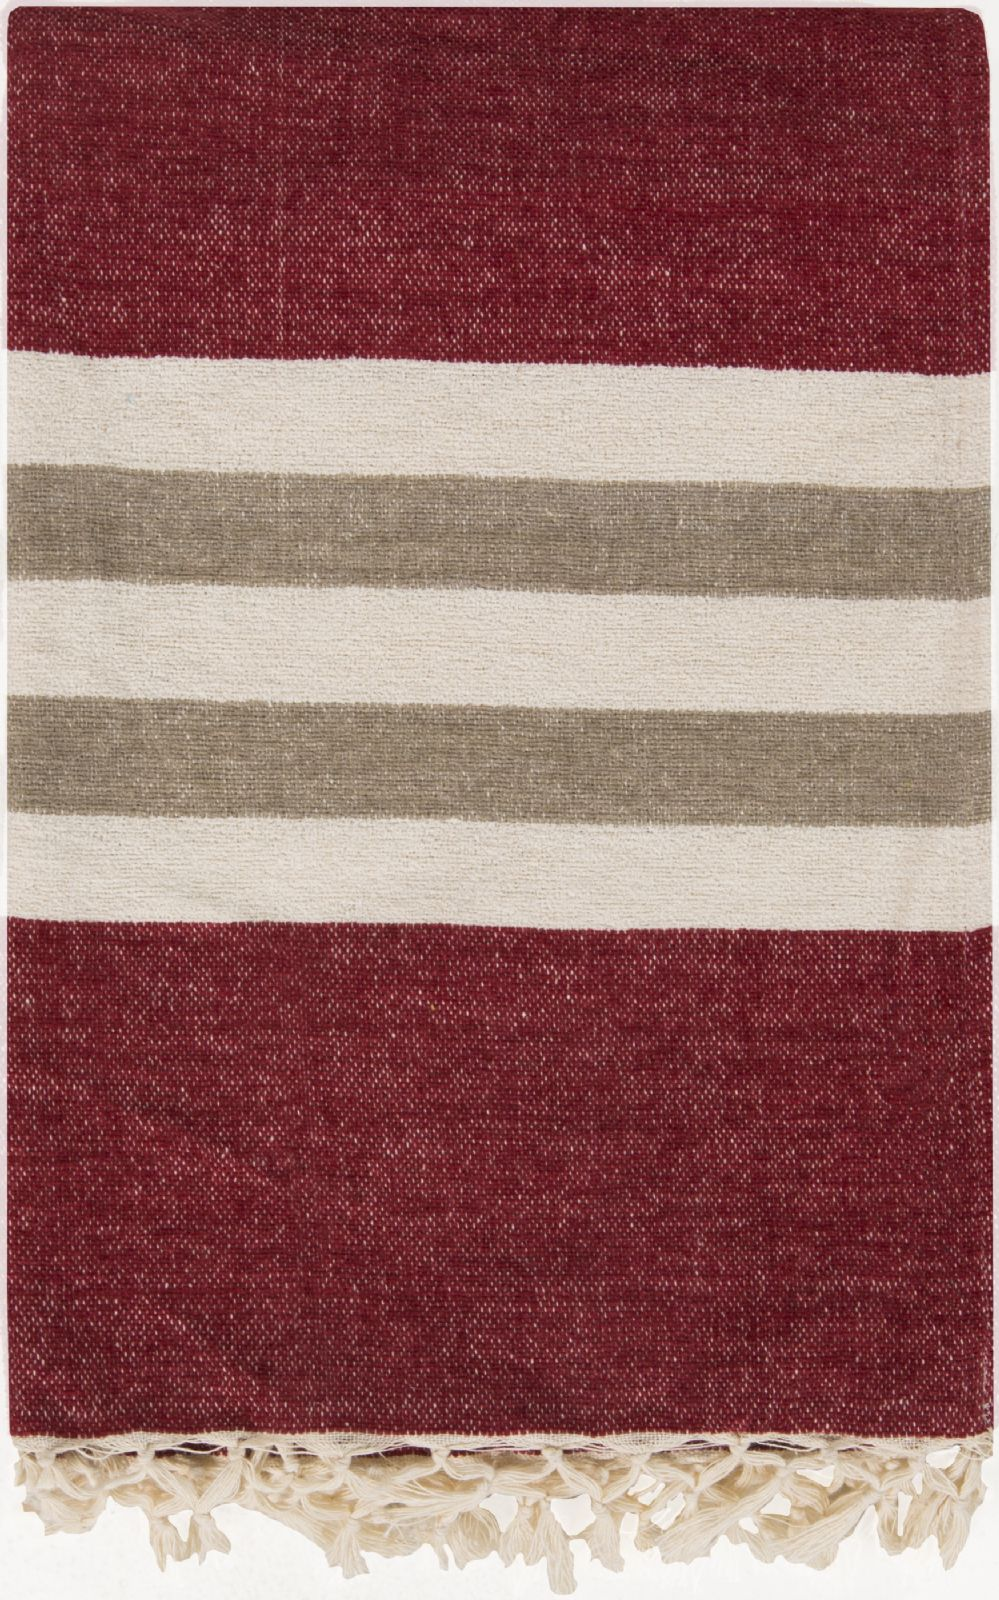 surya troy solid/striped throw collection